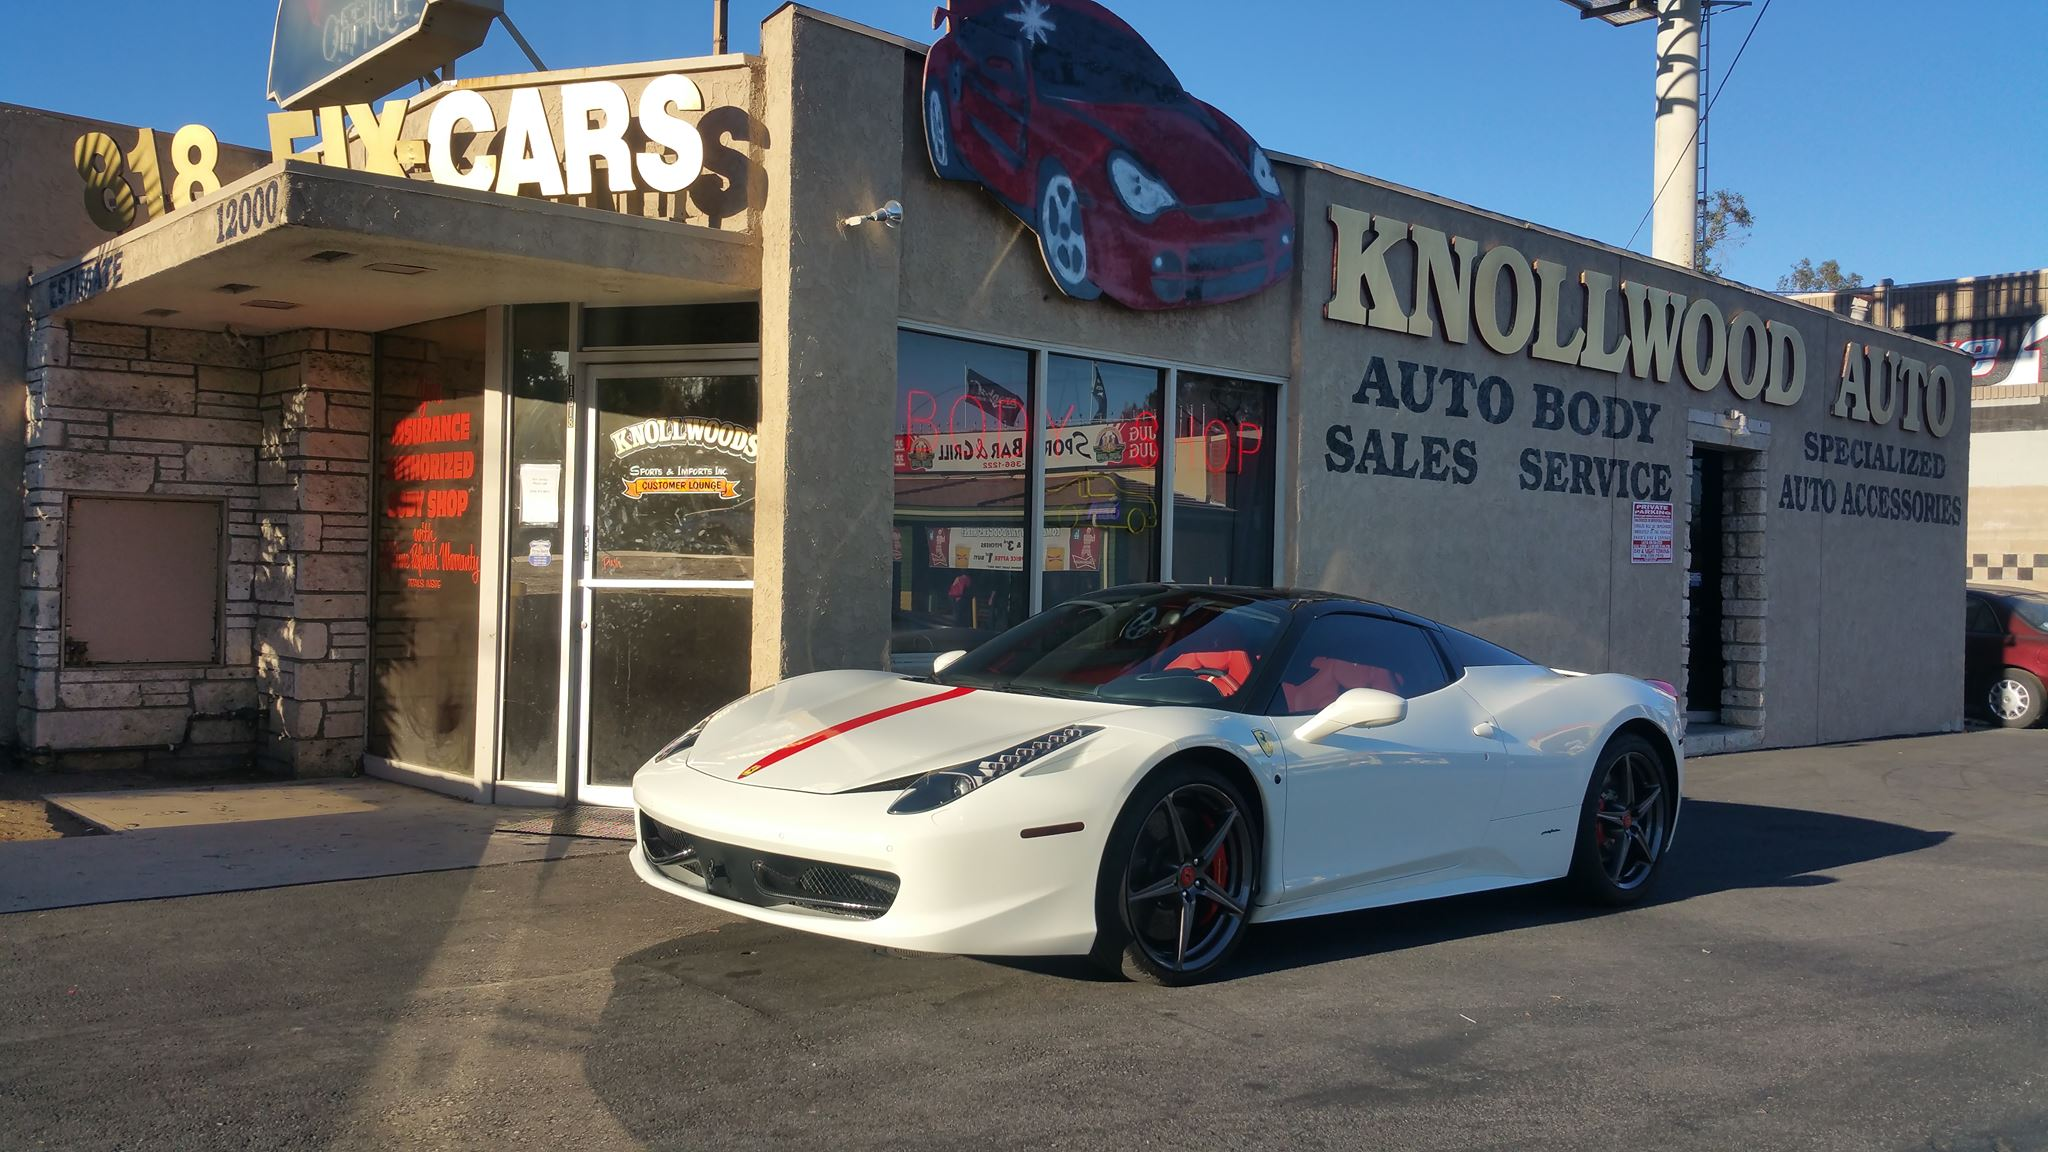 Knollwood Auto Center Store Front